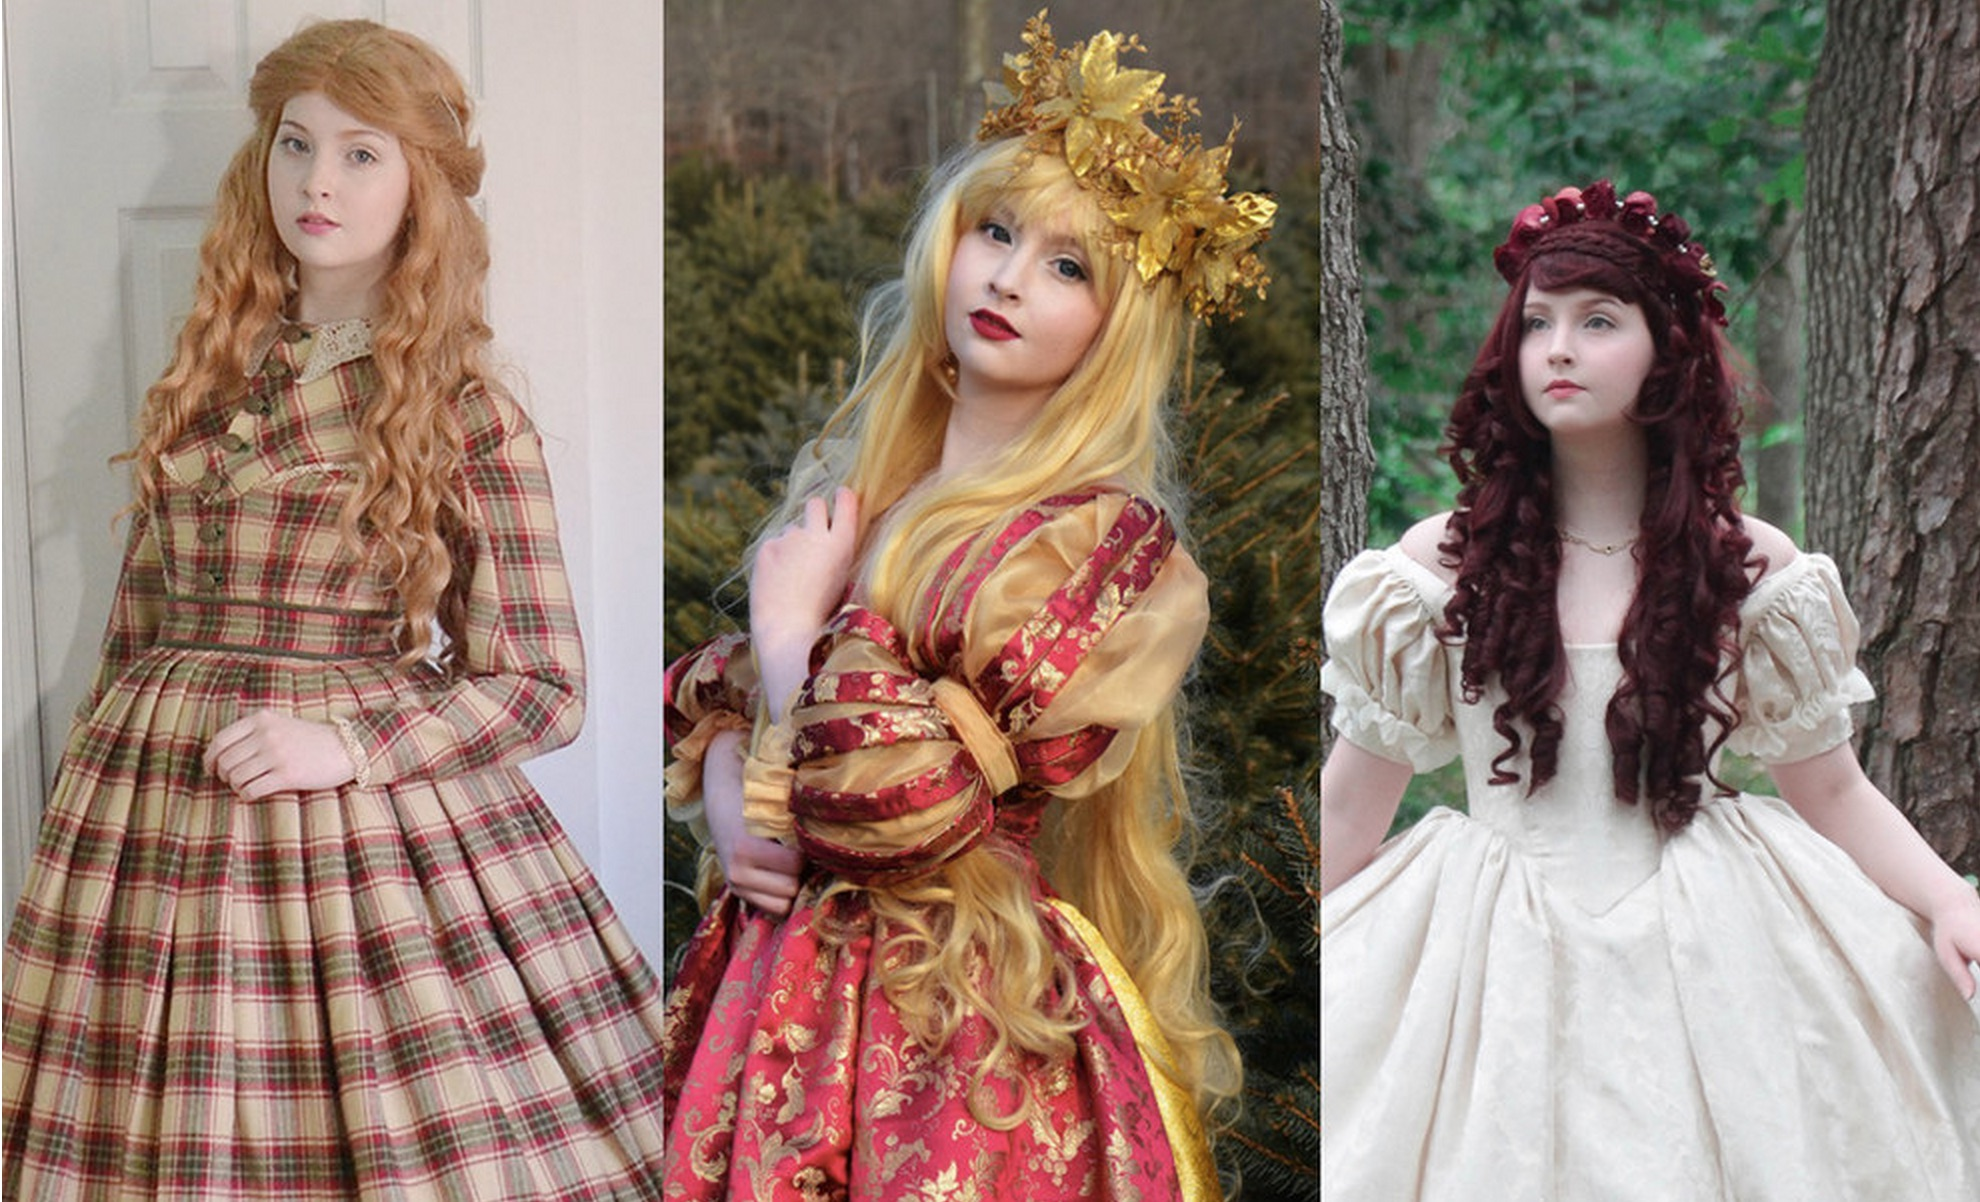 This teen costume designer will absolutely blow your mind